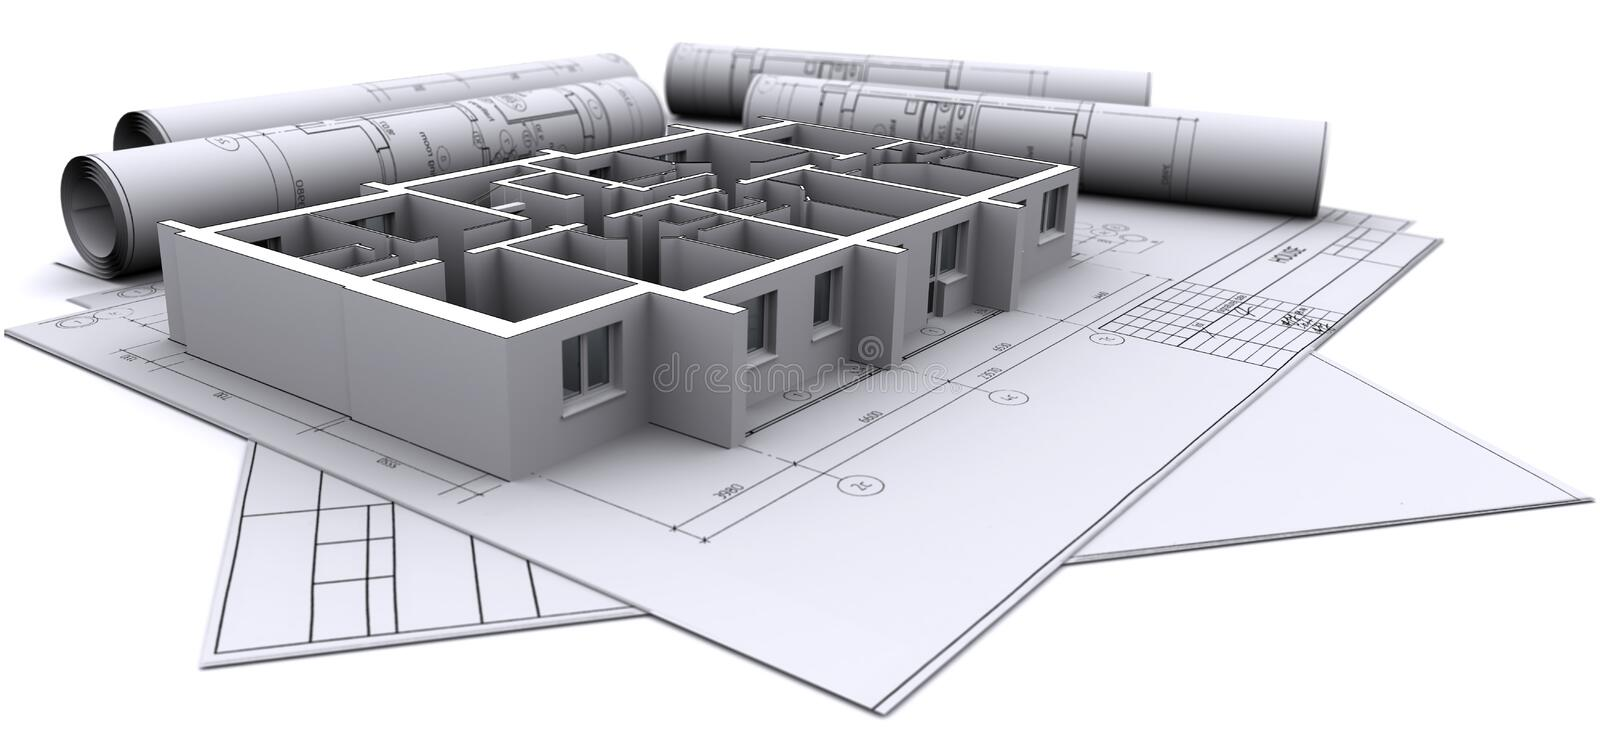 Download Walls On Construction Drawings Stock Illustration - Image: 18427512